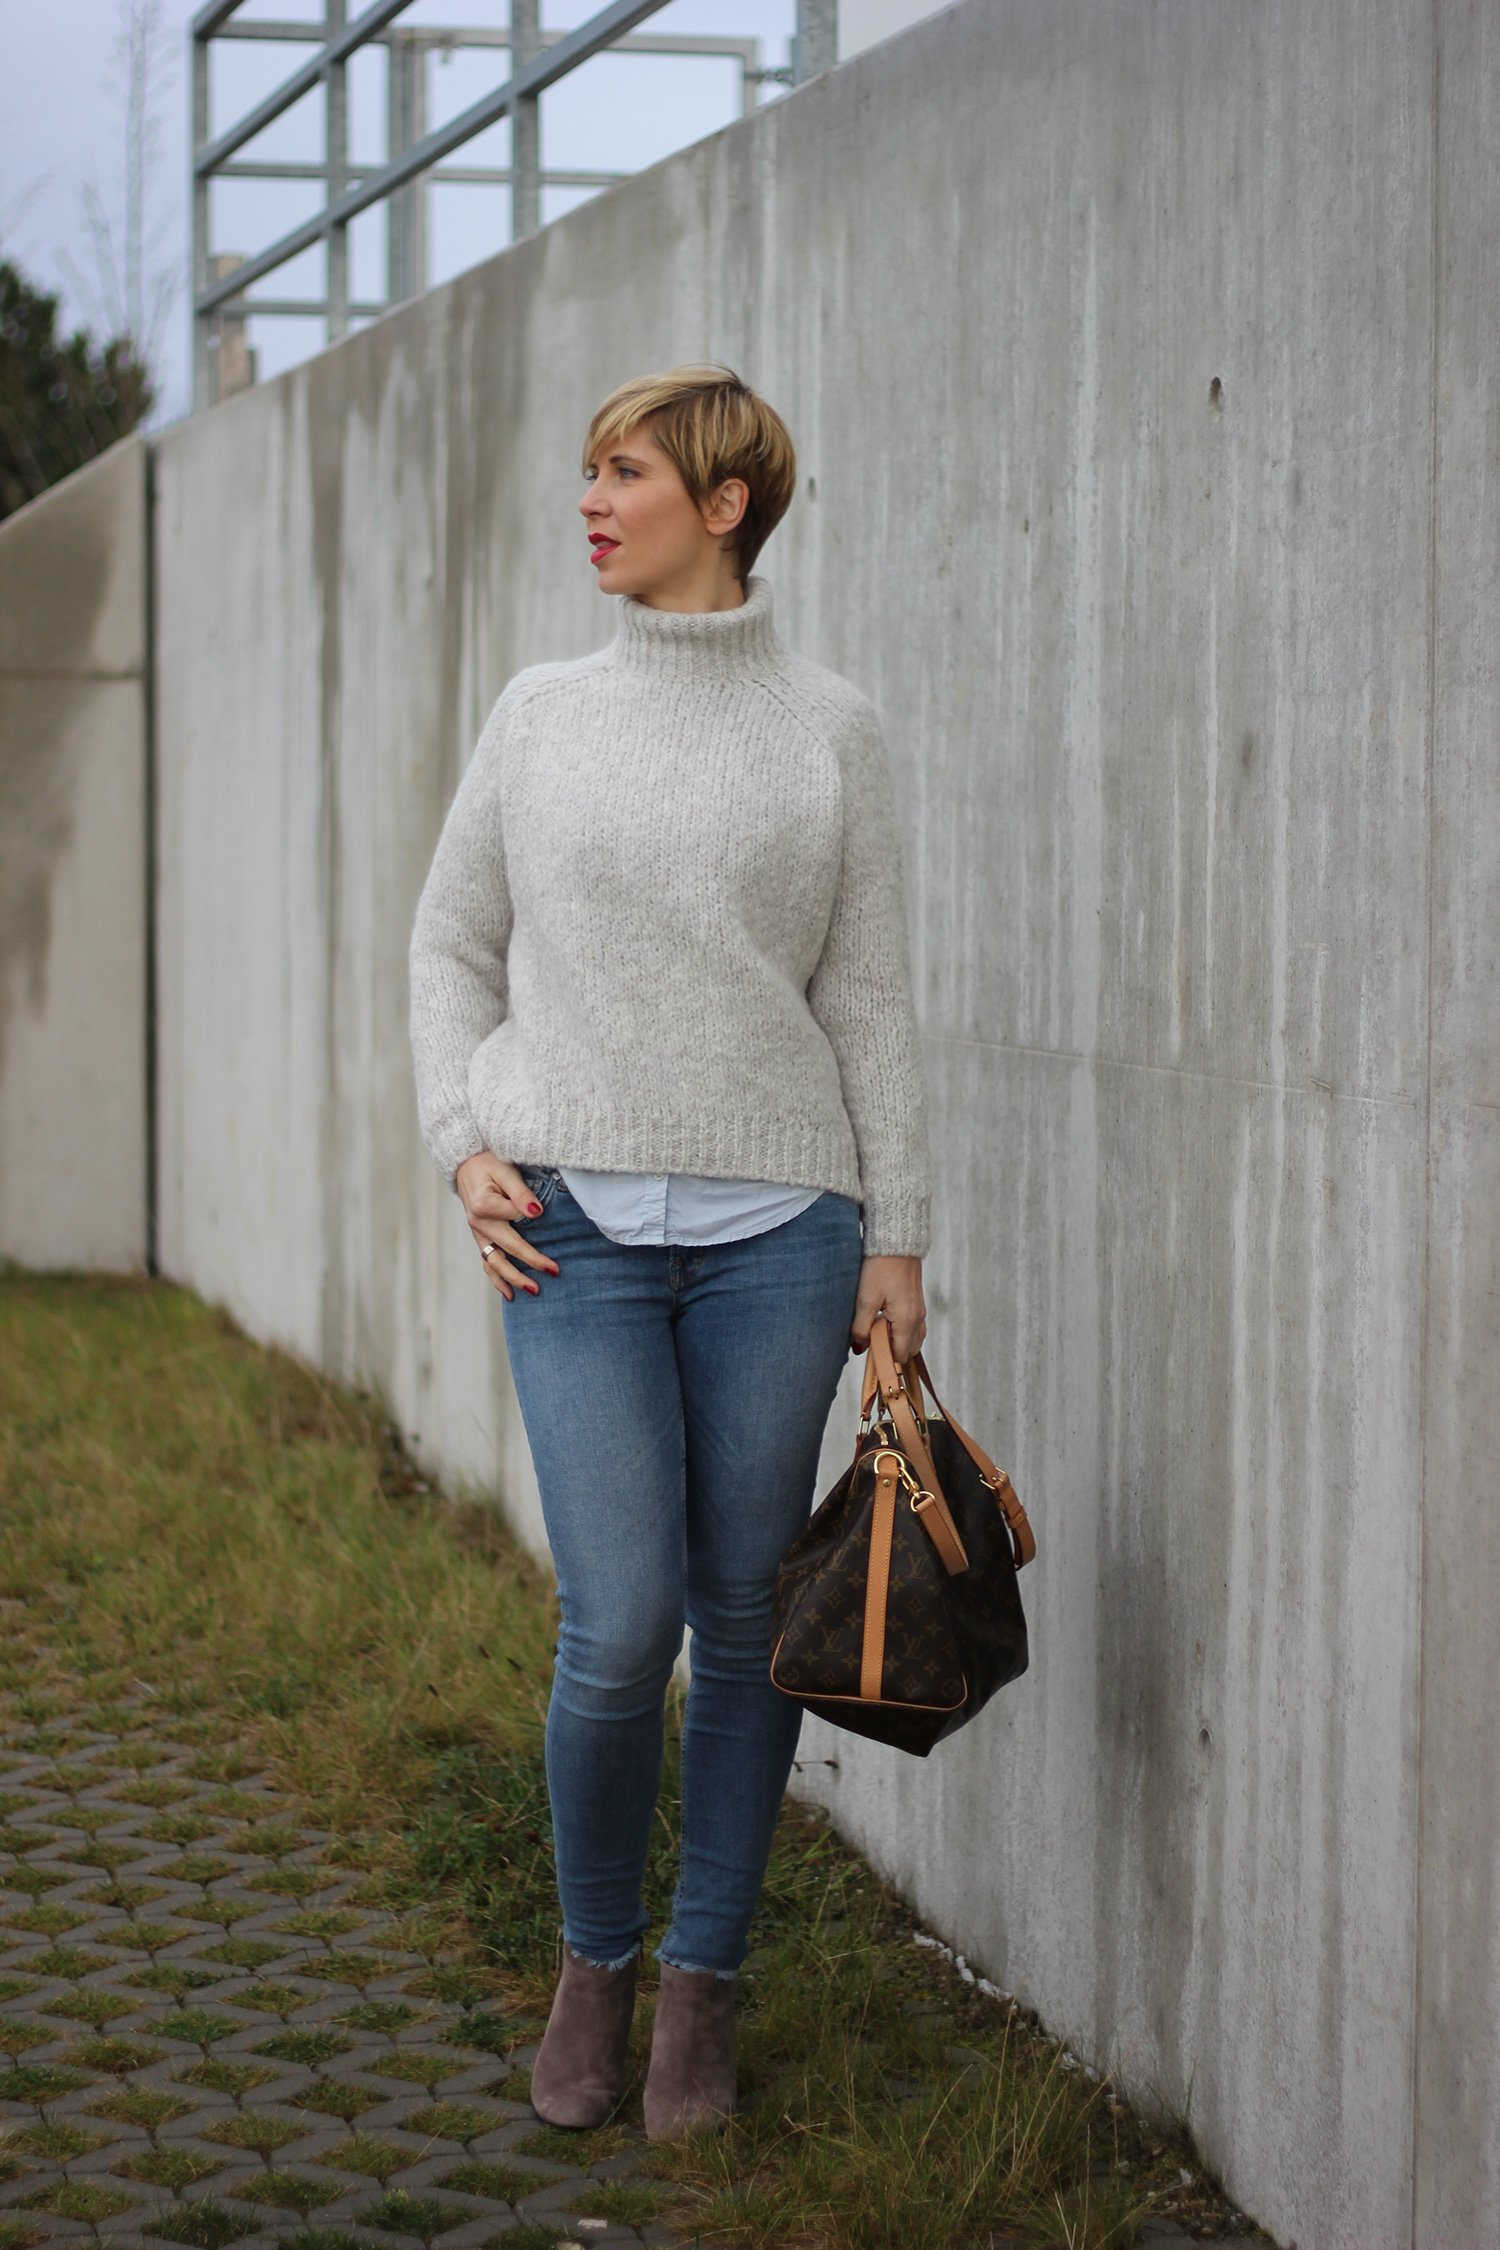 IMG_8880a_Zara_Rollkragen_casual_Jeans_Only_ConnyDoll_AHemadundahos_KennelundSchmenger_Boots_Marcopolo_Bluse